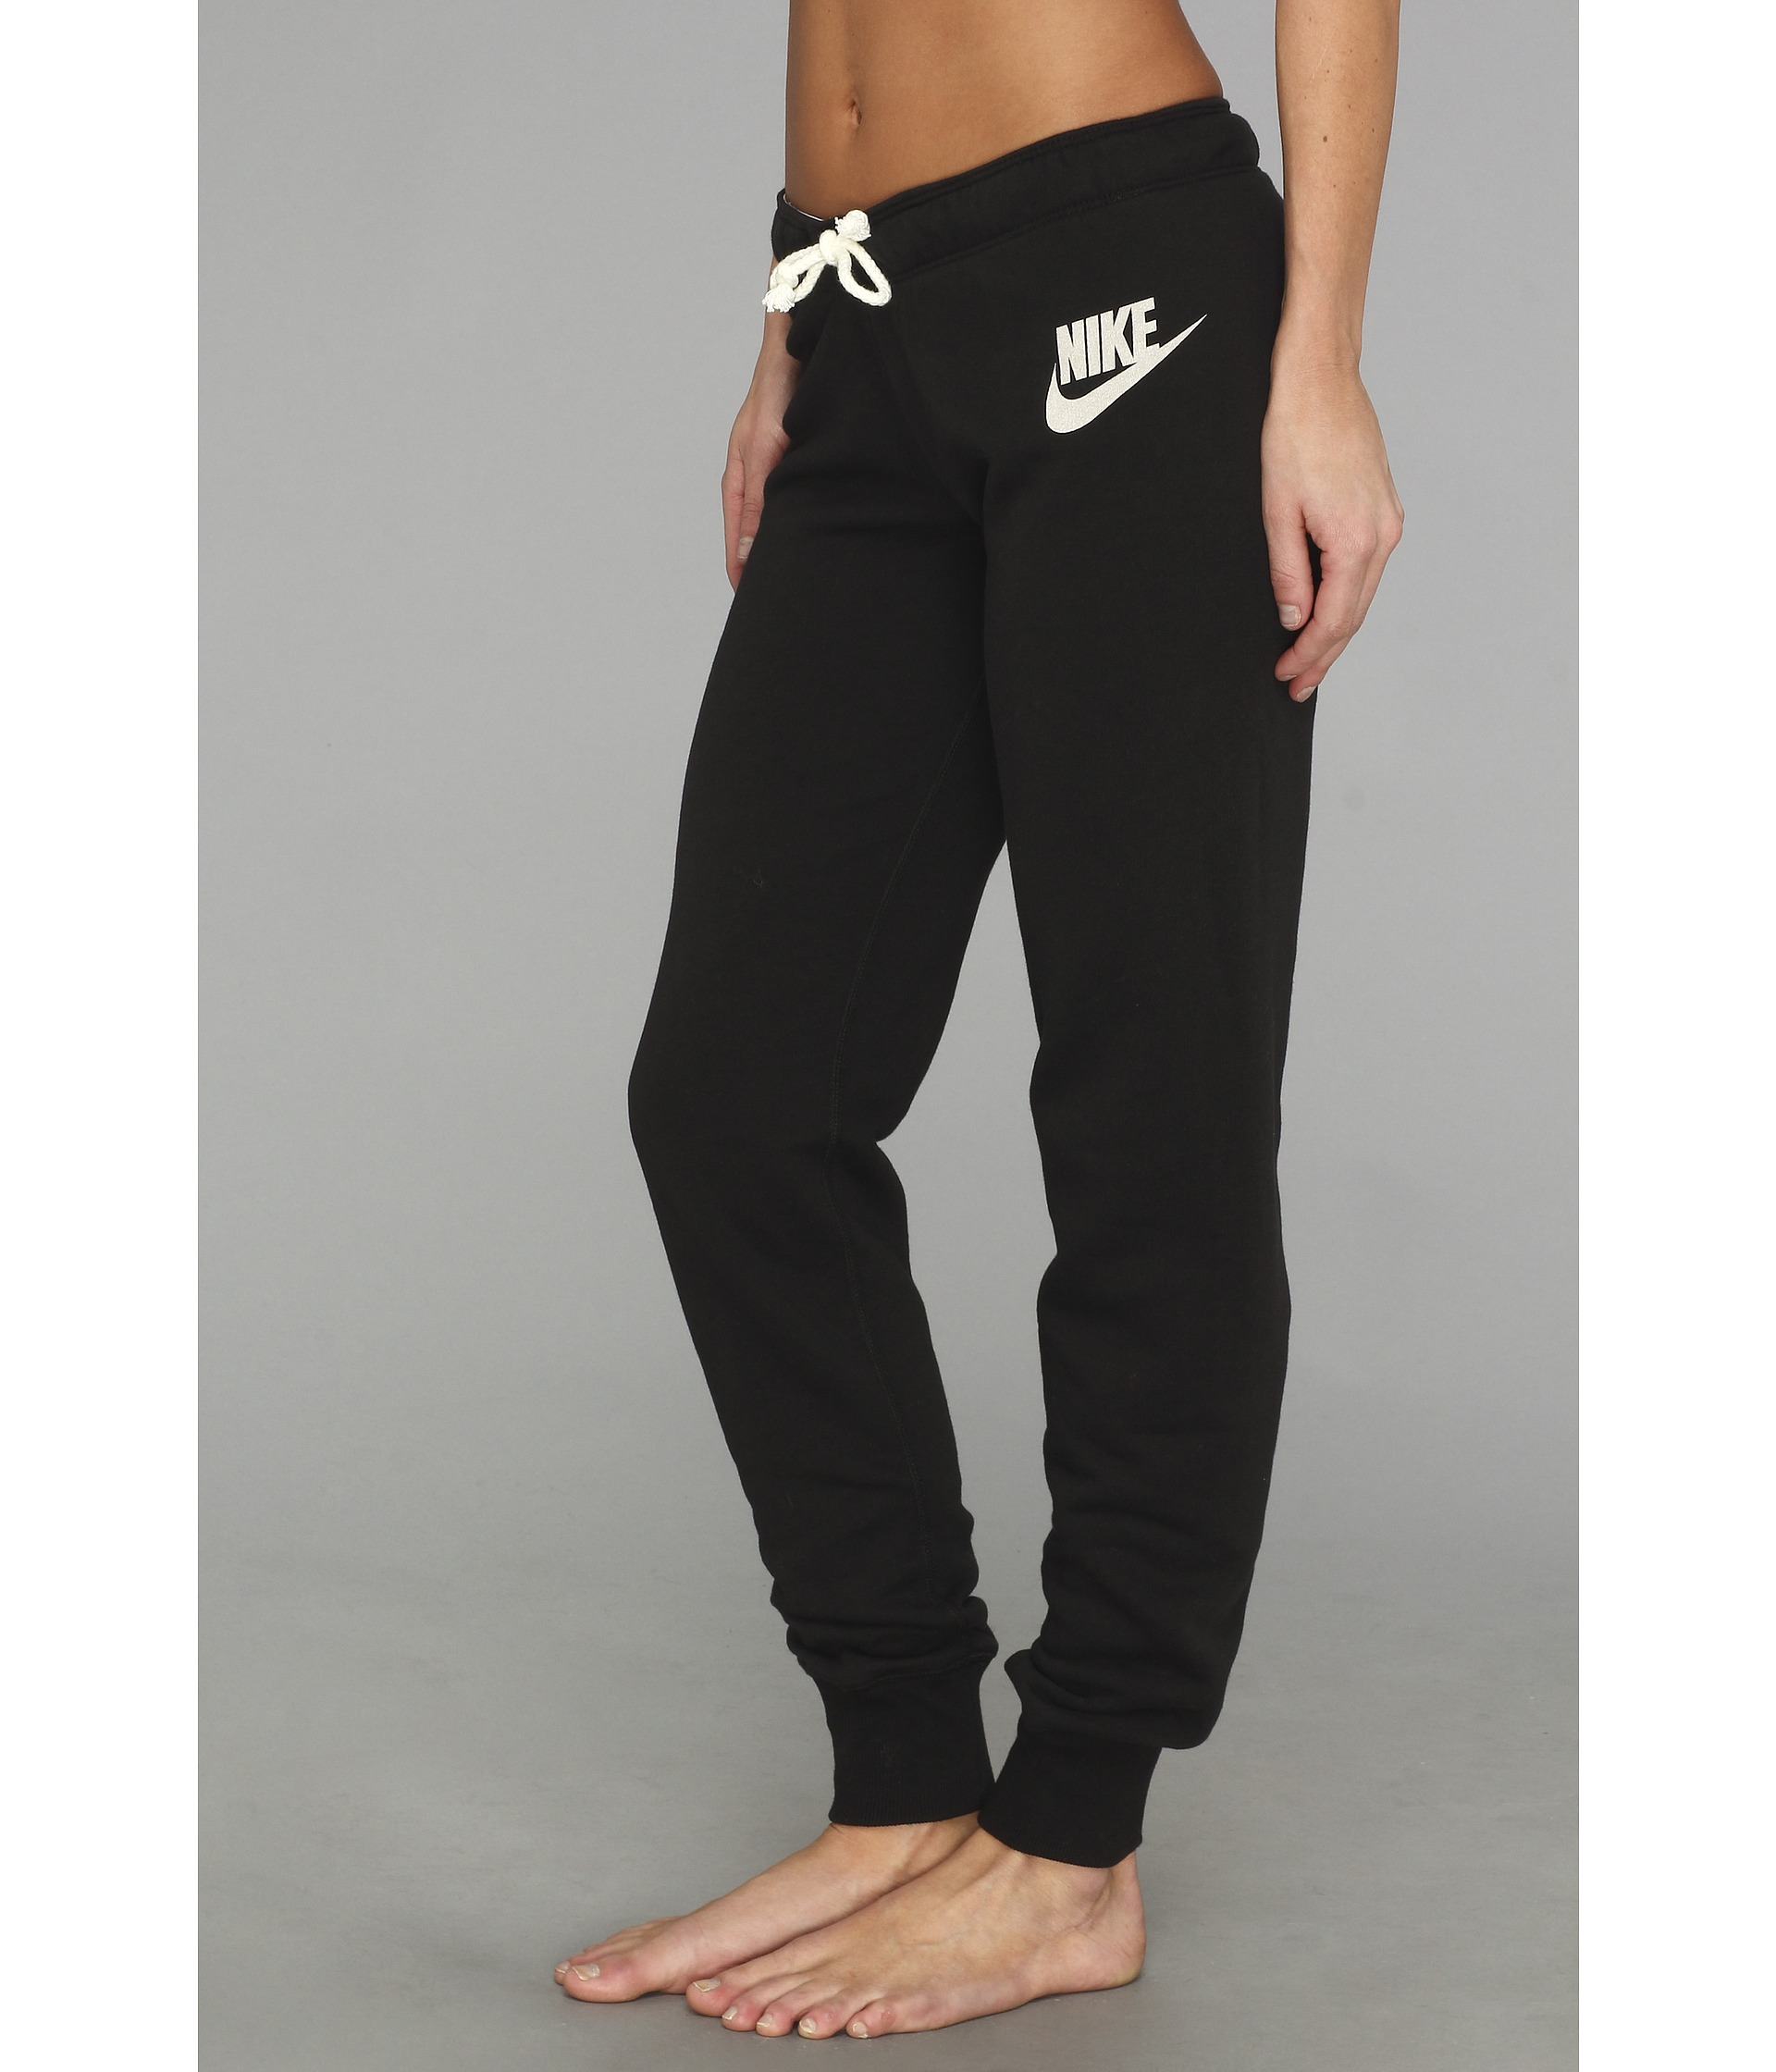 Excellent Nike Pants Gym Vintage Capri Sweatpants  Pants Amp Capris